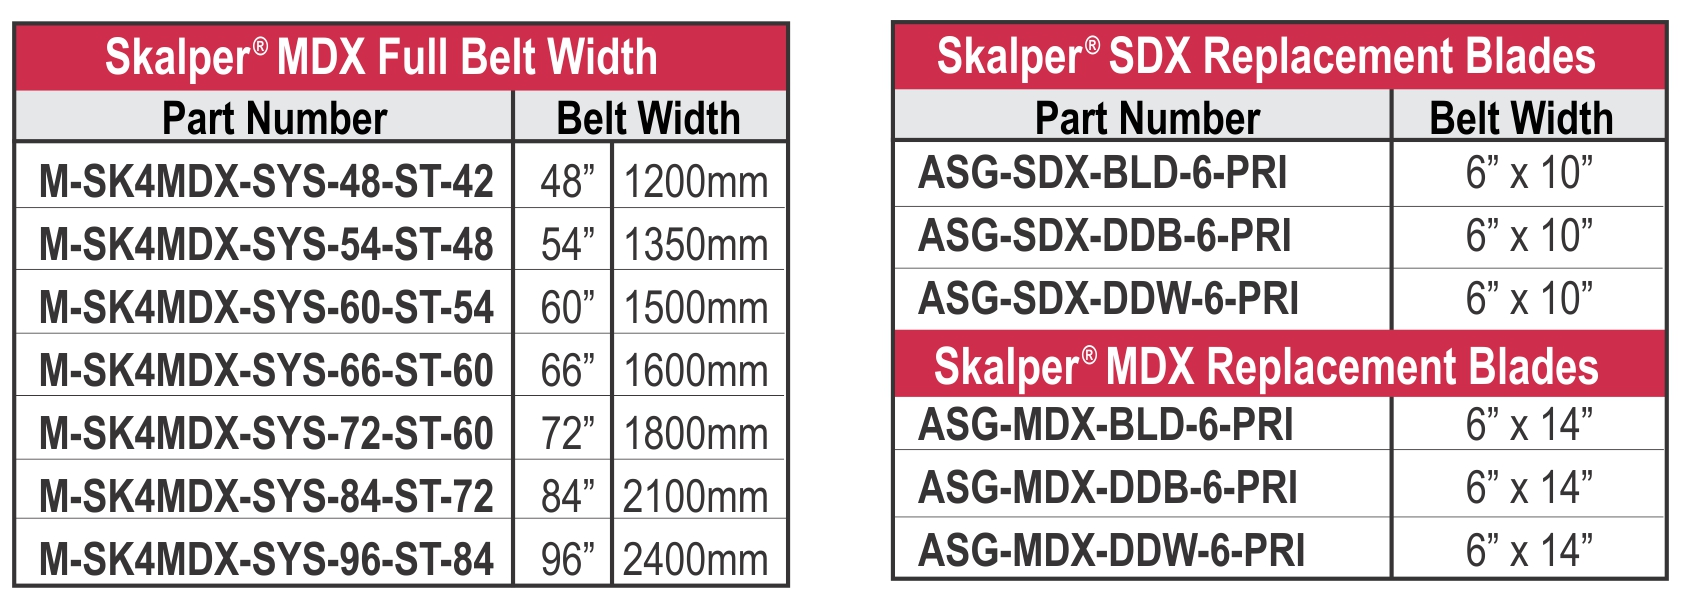 Skalper MDX_PN and Blade Chart-rev10-14